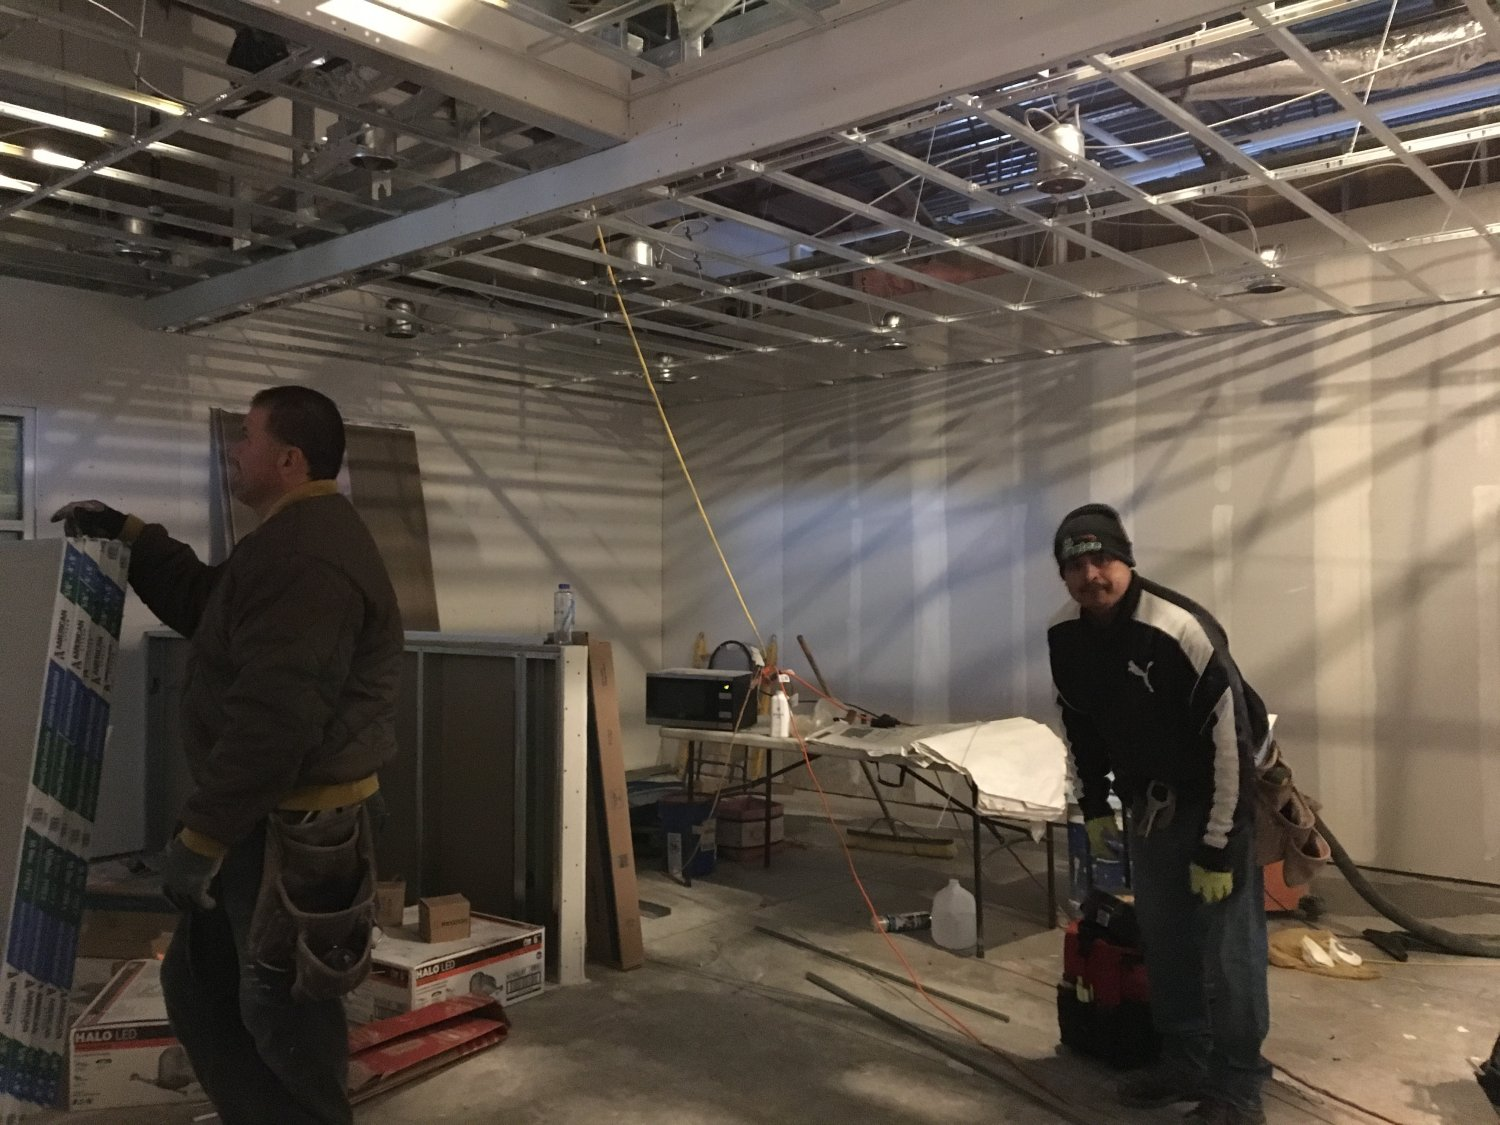 Two men standing in indoor construction site